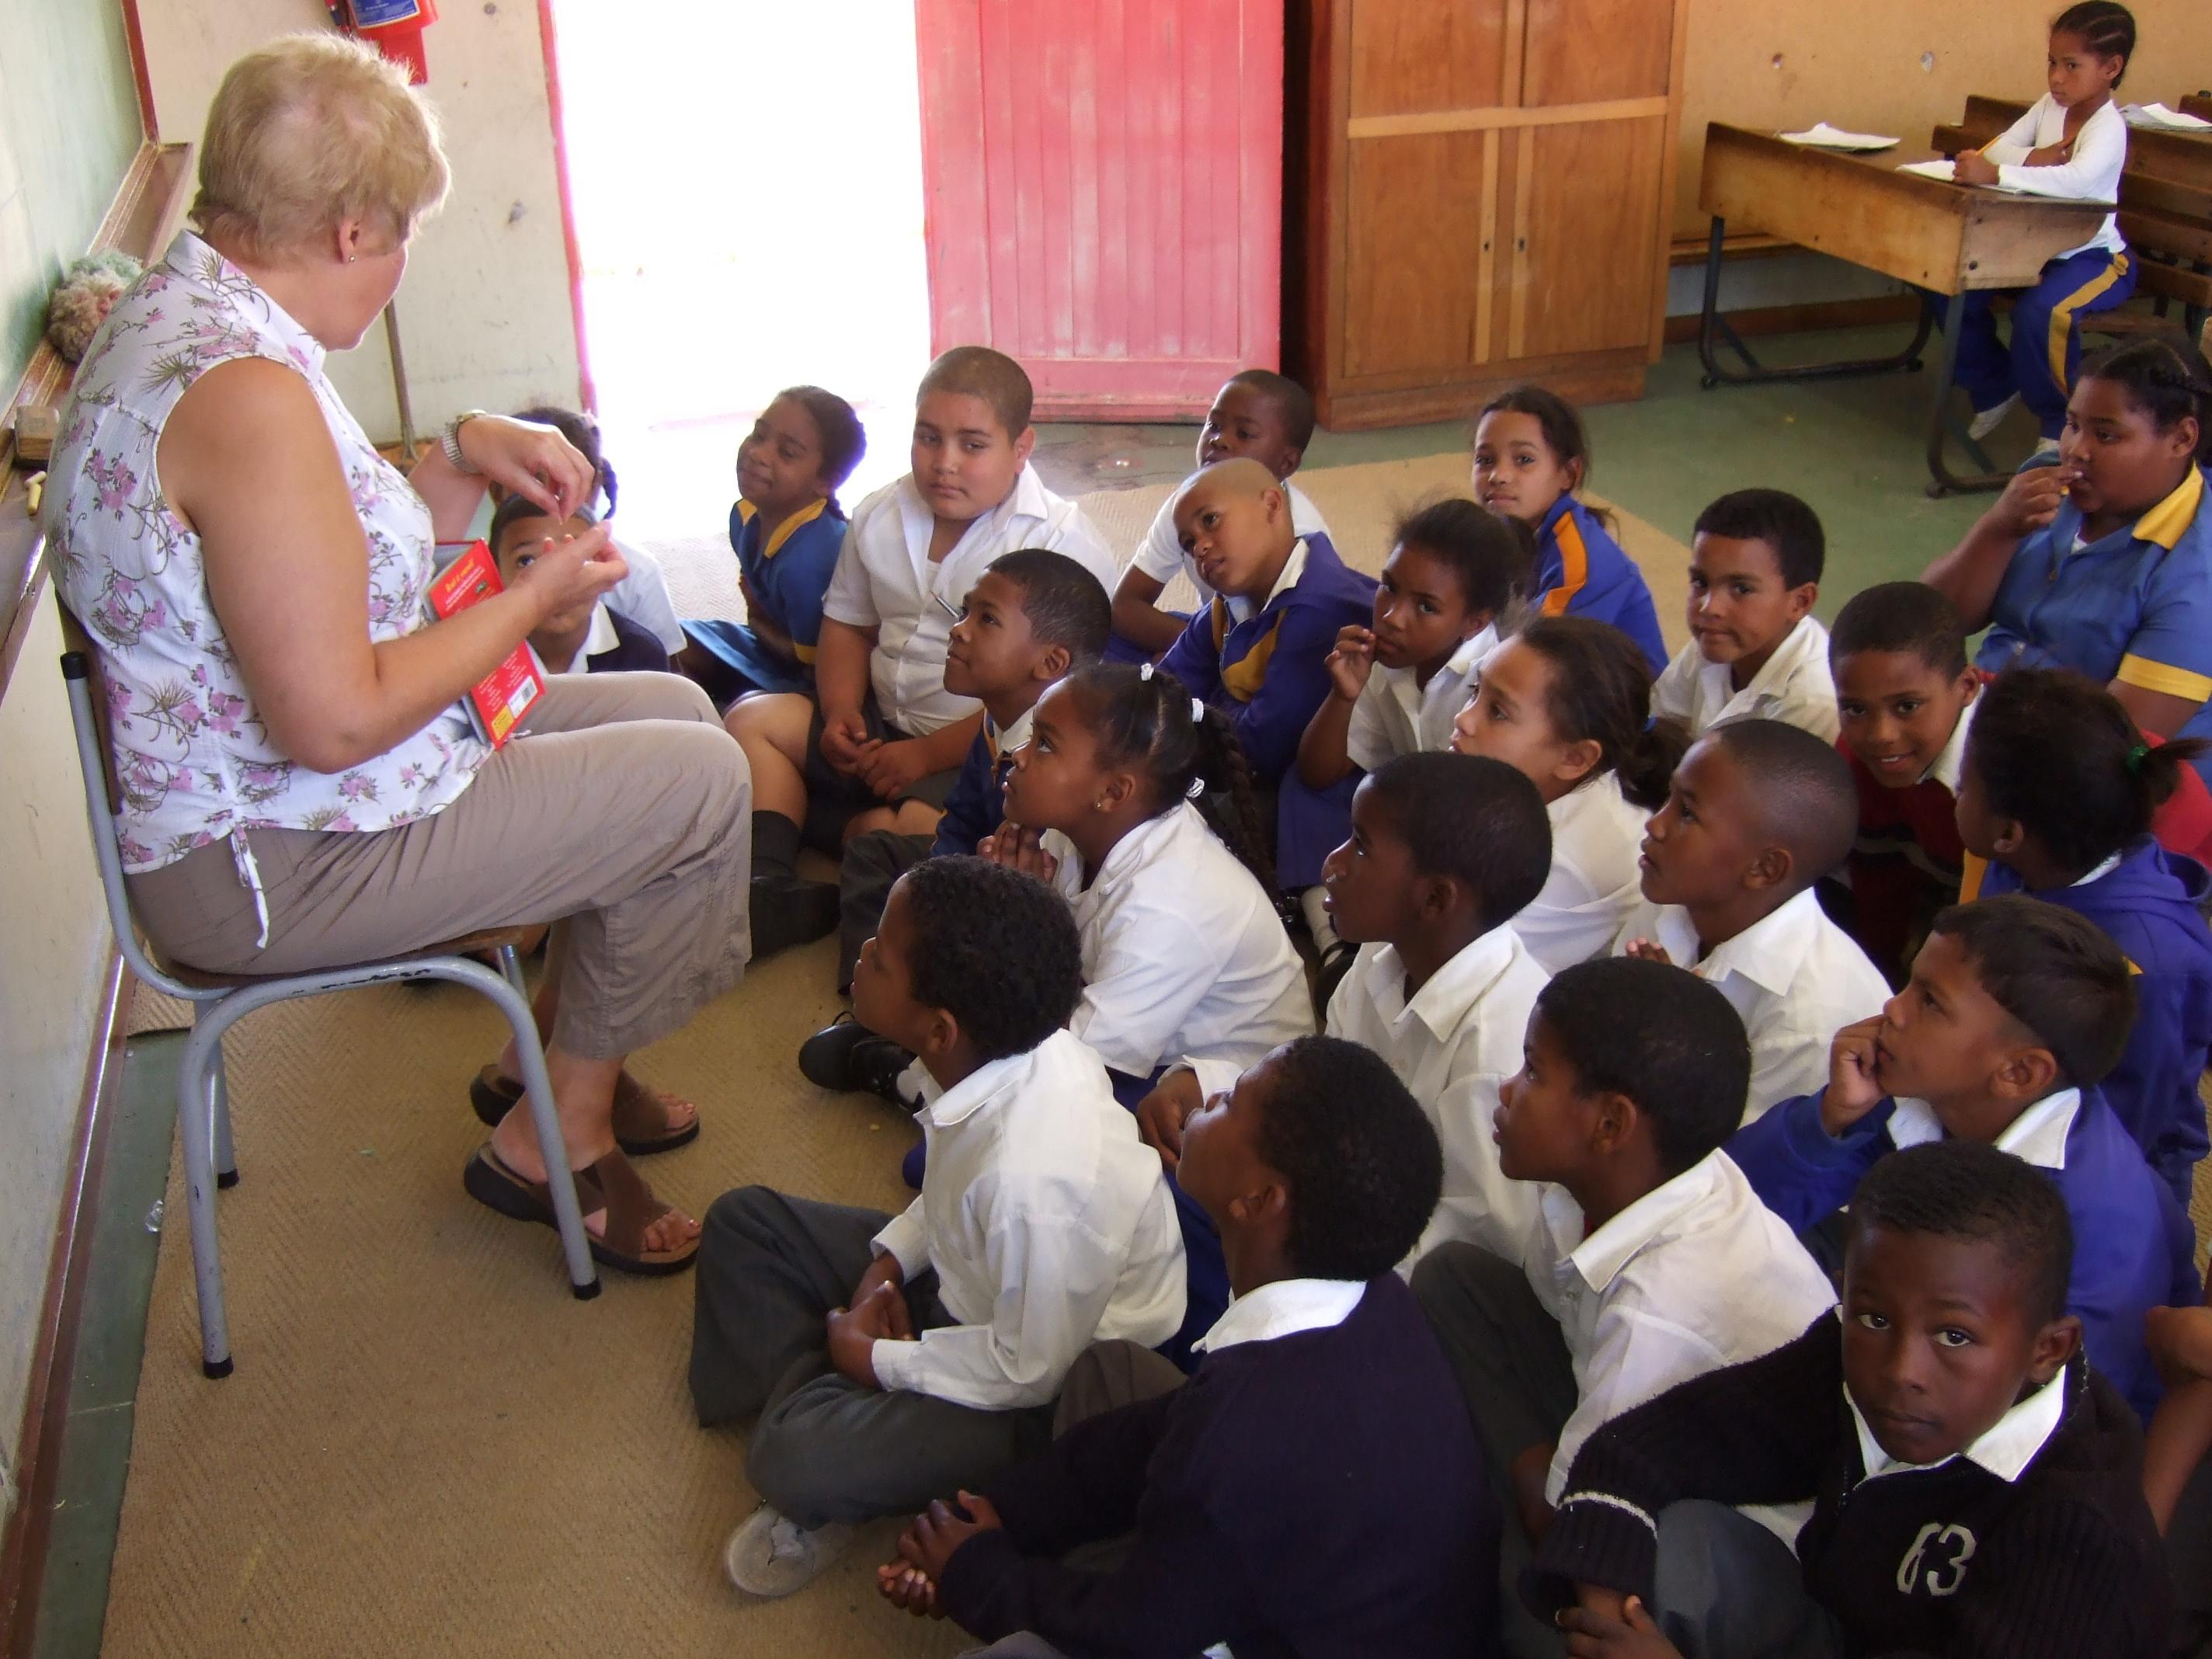 Young students listen to a Projects Abroad volunteer as a teacher in South Africa